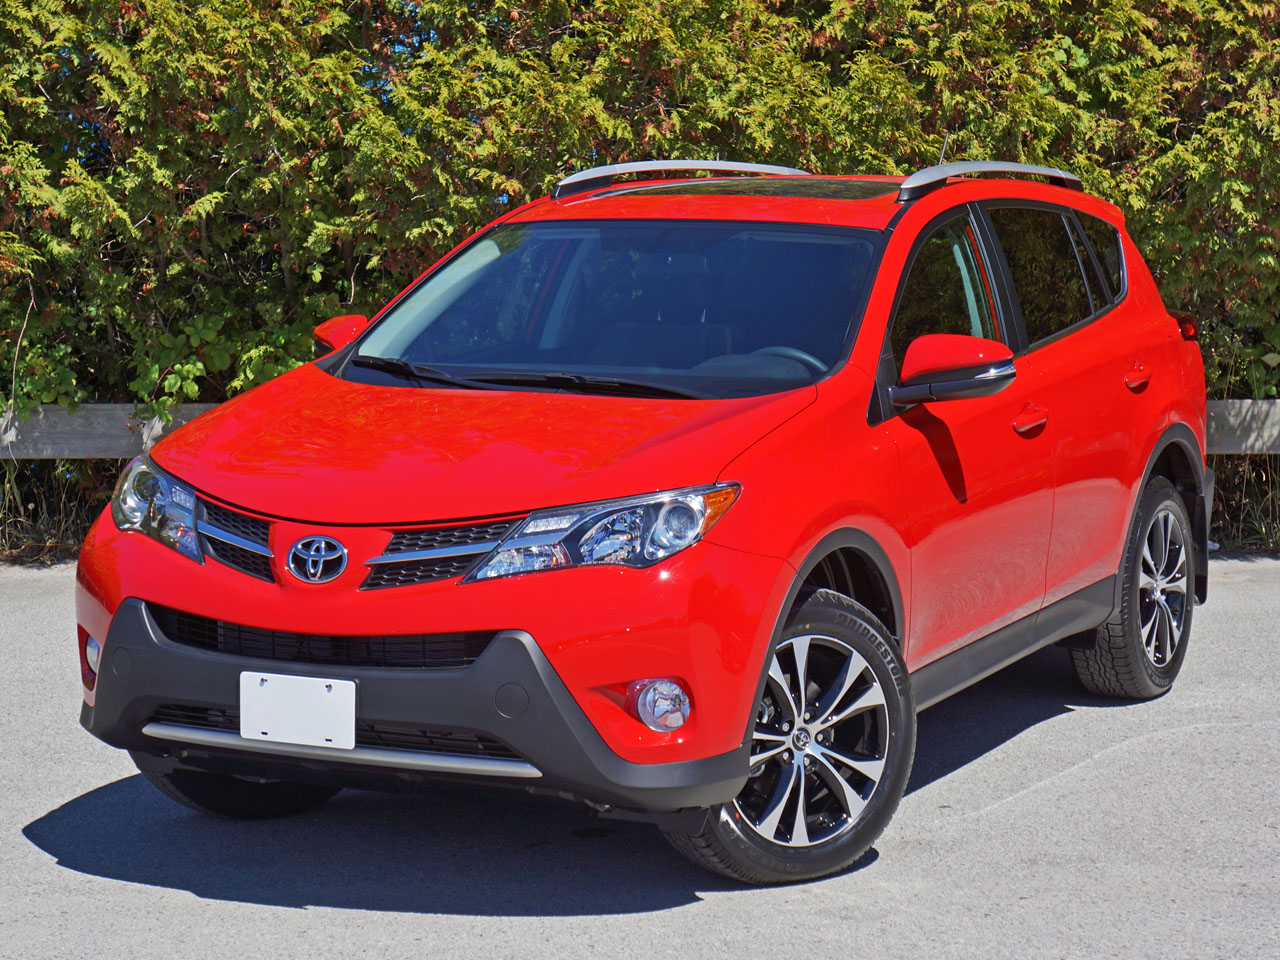 2015 toyota rav4 xle awd 50th anniversary special edition road test review carcostcanada. Black Bedroom Furniture Sets. Home Design Ideas